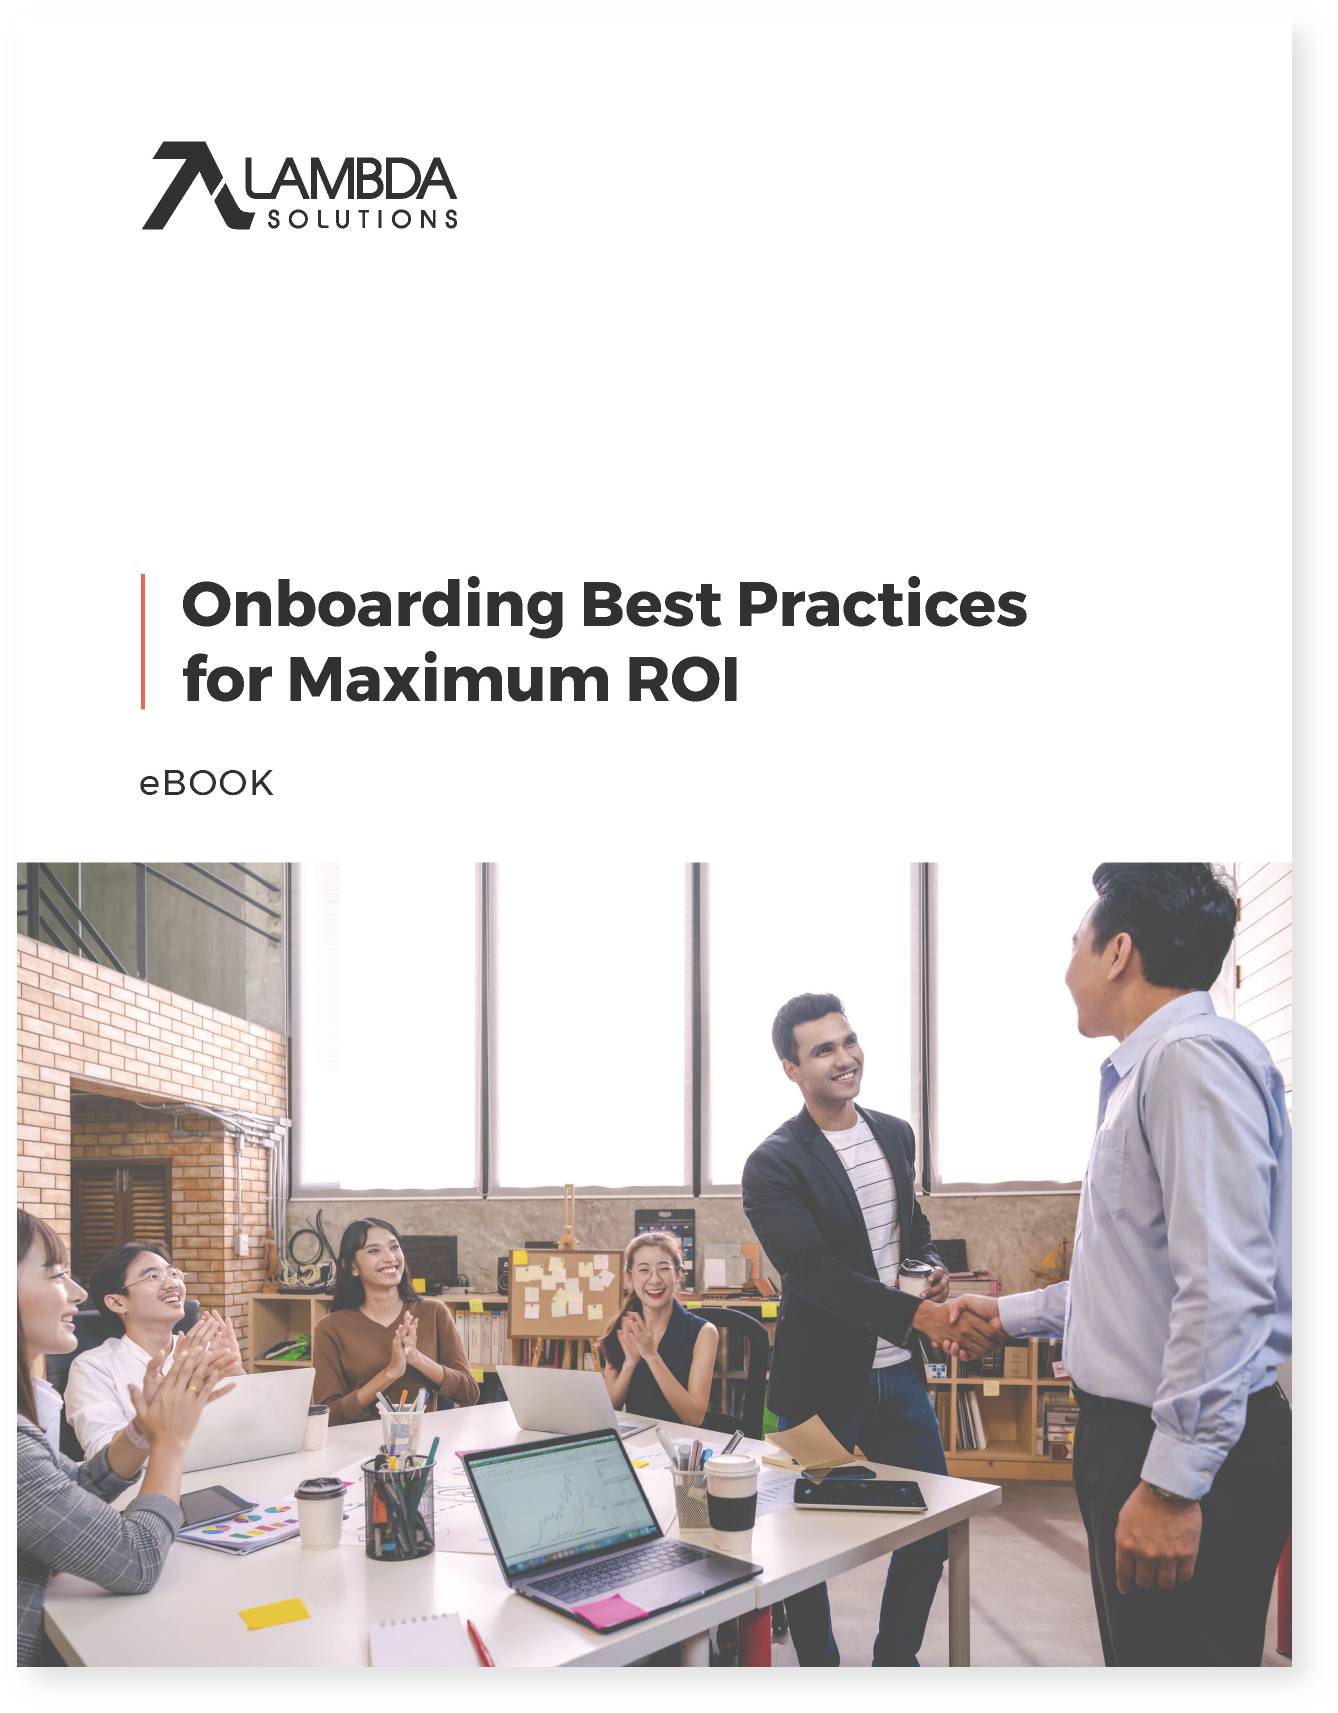 image thumbnail eBook Onboarding Best Practices Maximum ROI Cover